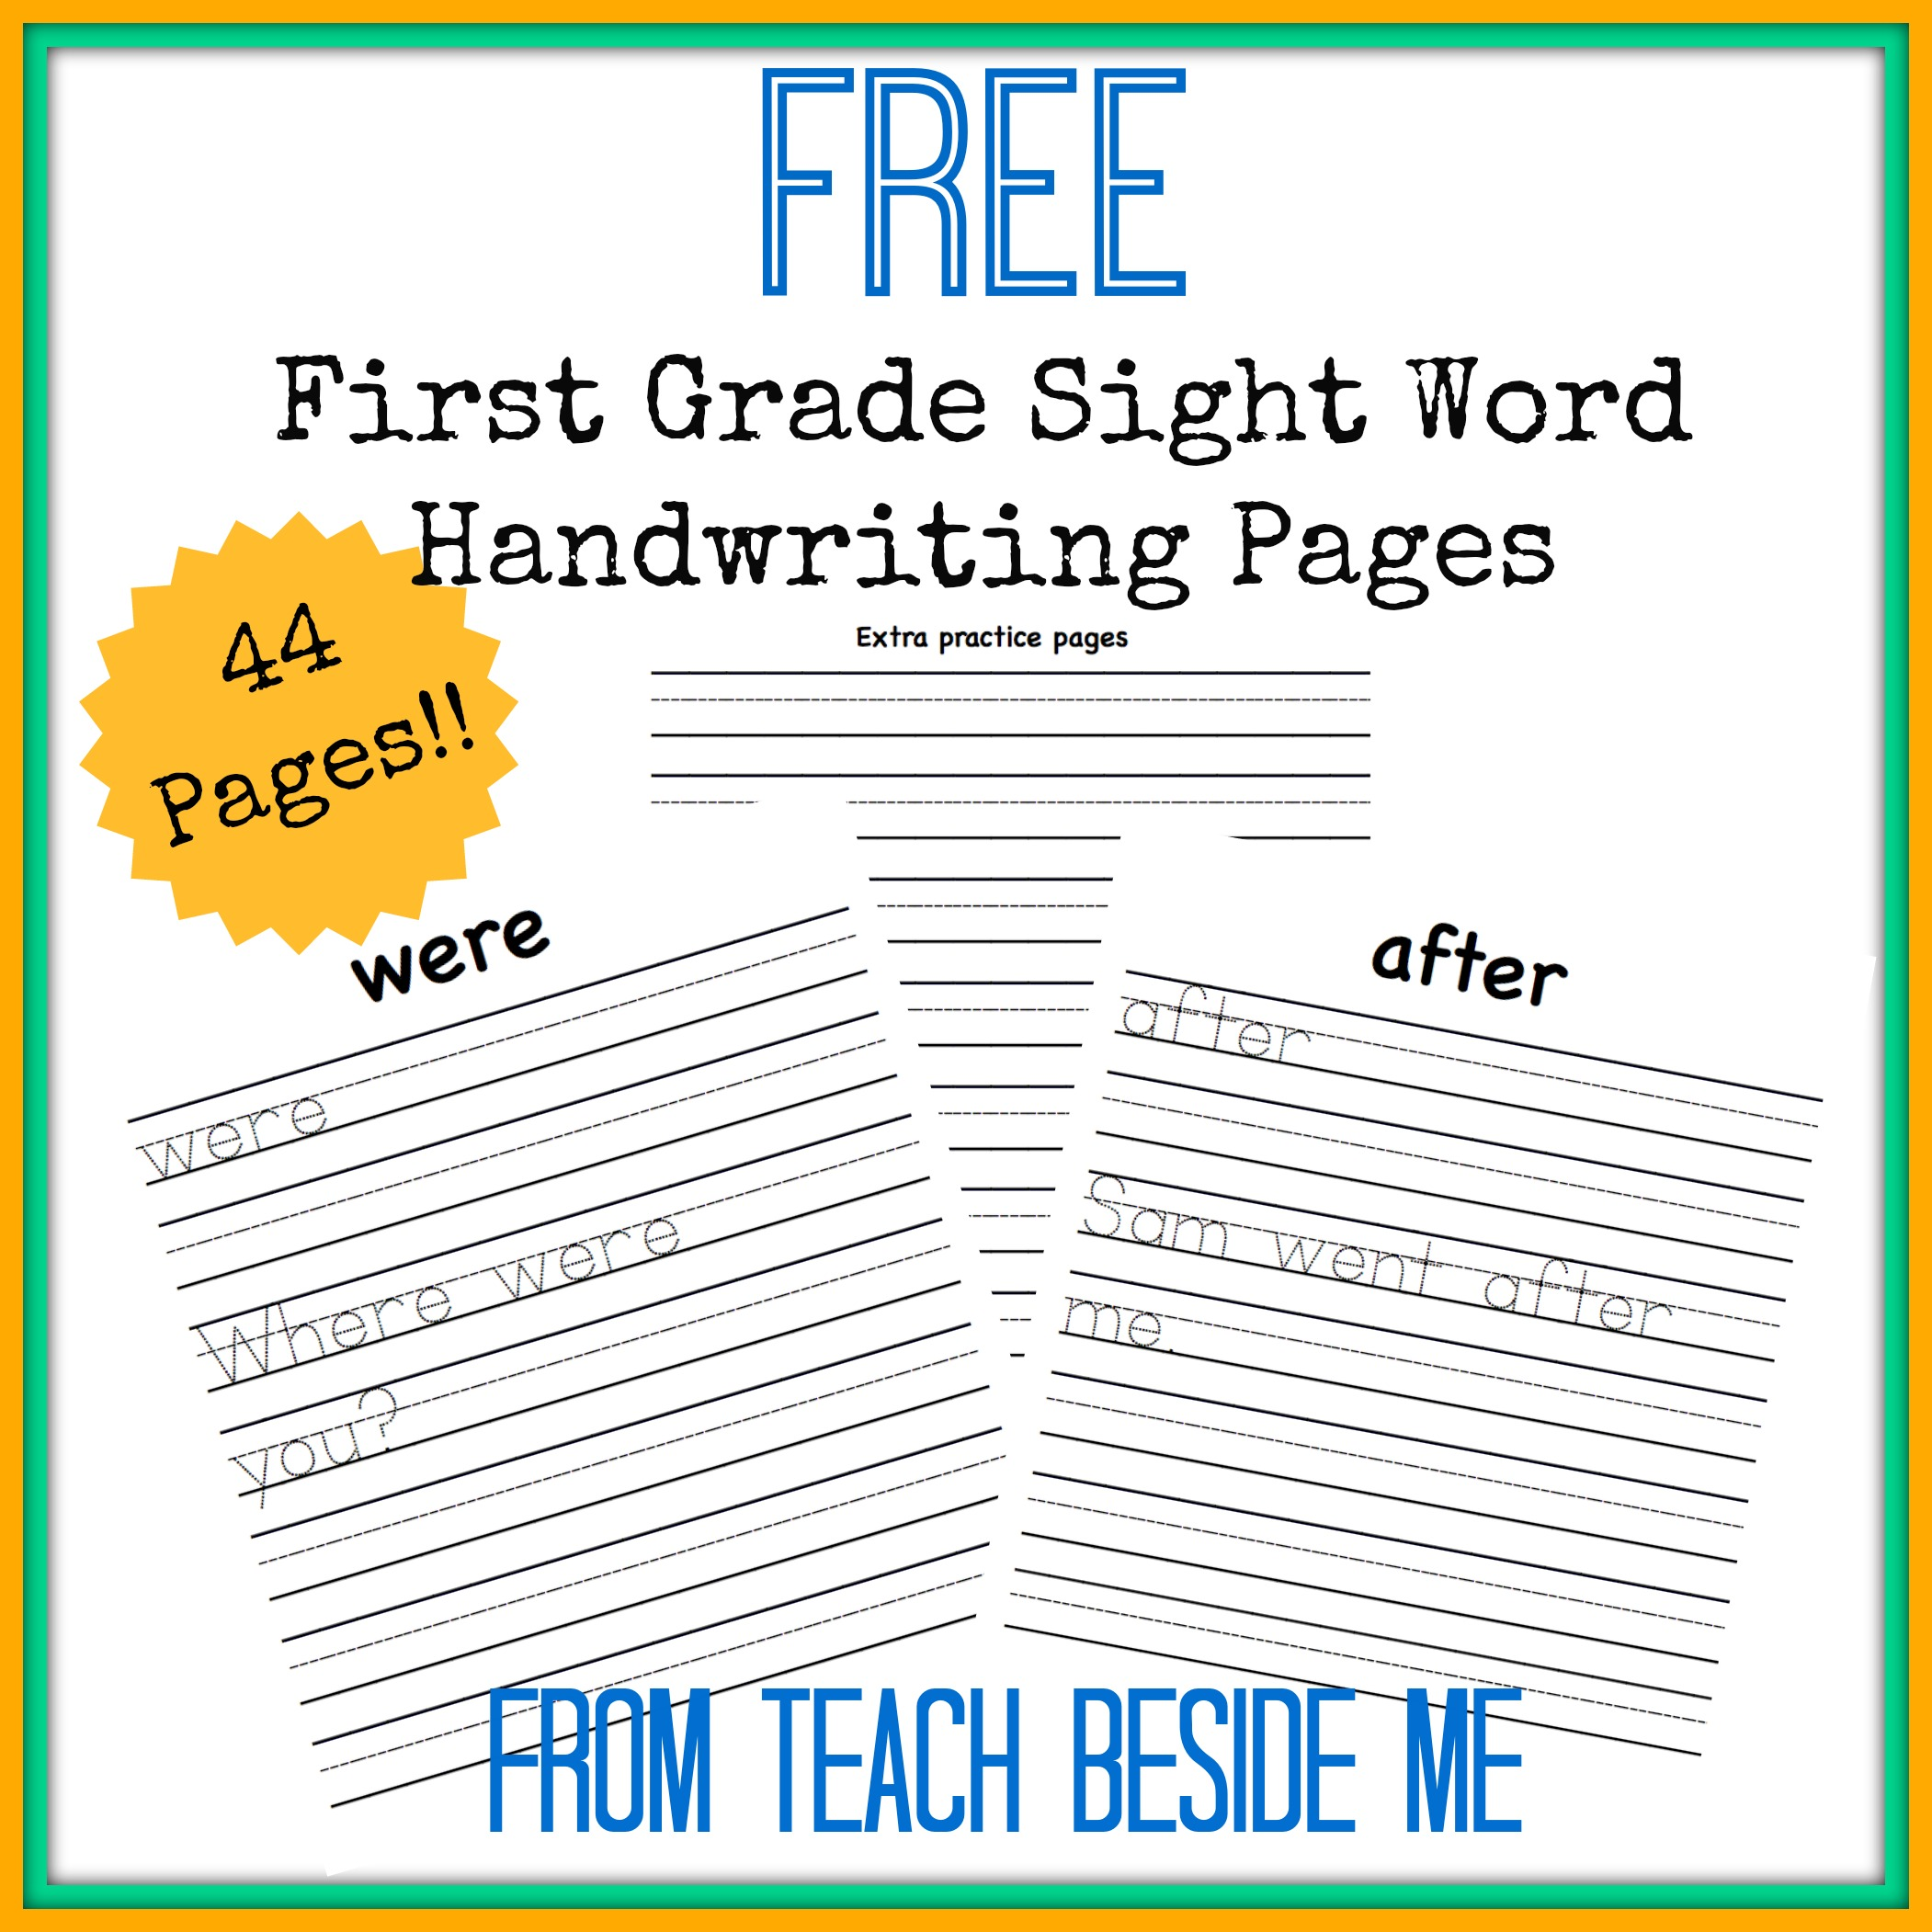 Resource image for 1st grade sight words printable